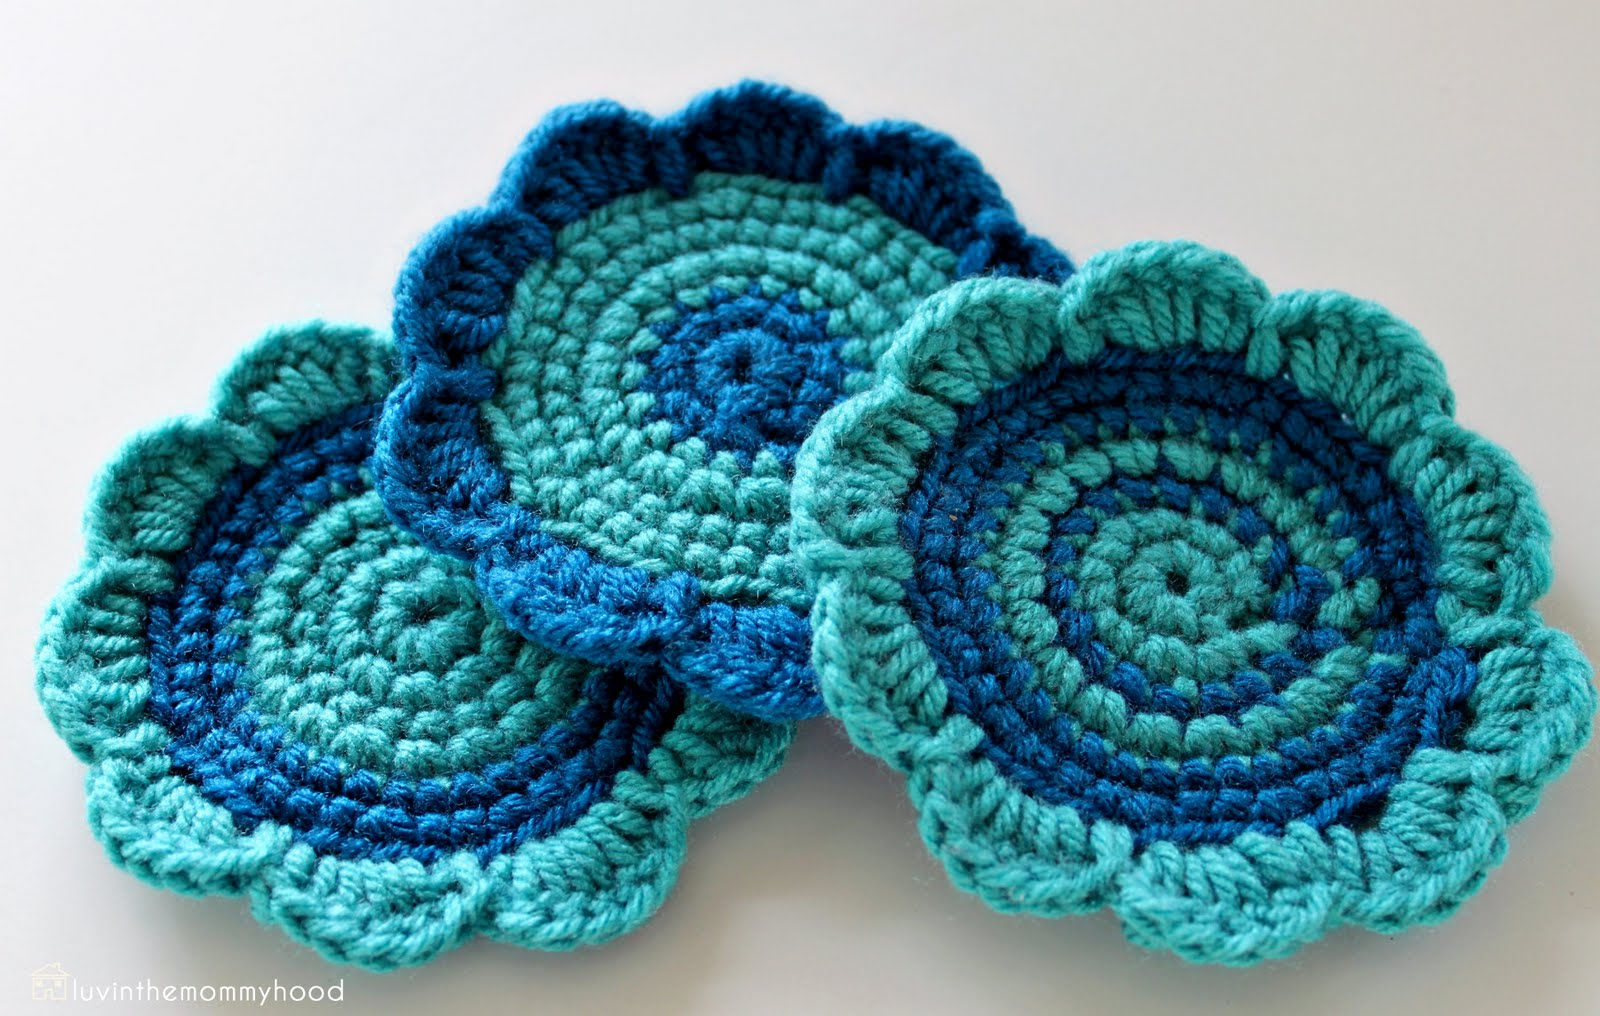 Domestic Goddess: Crocheted flower coasters